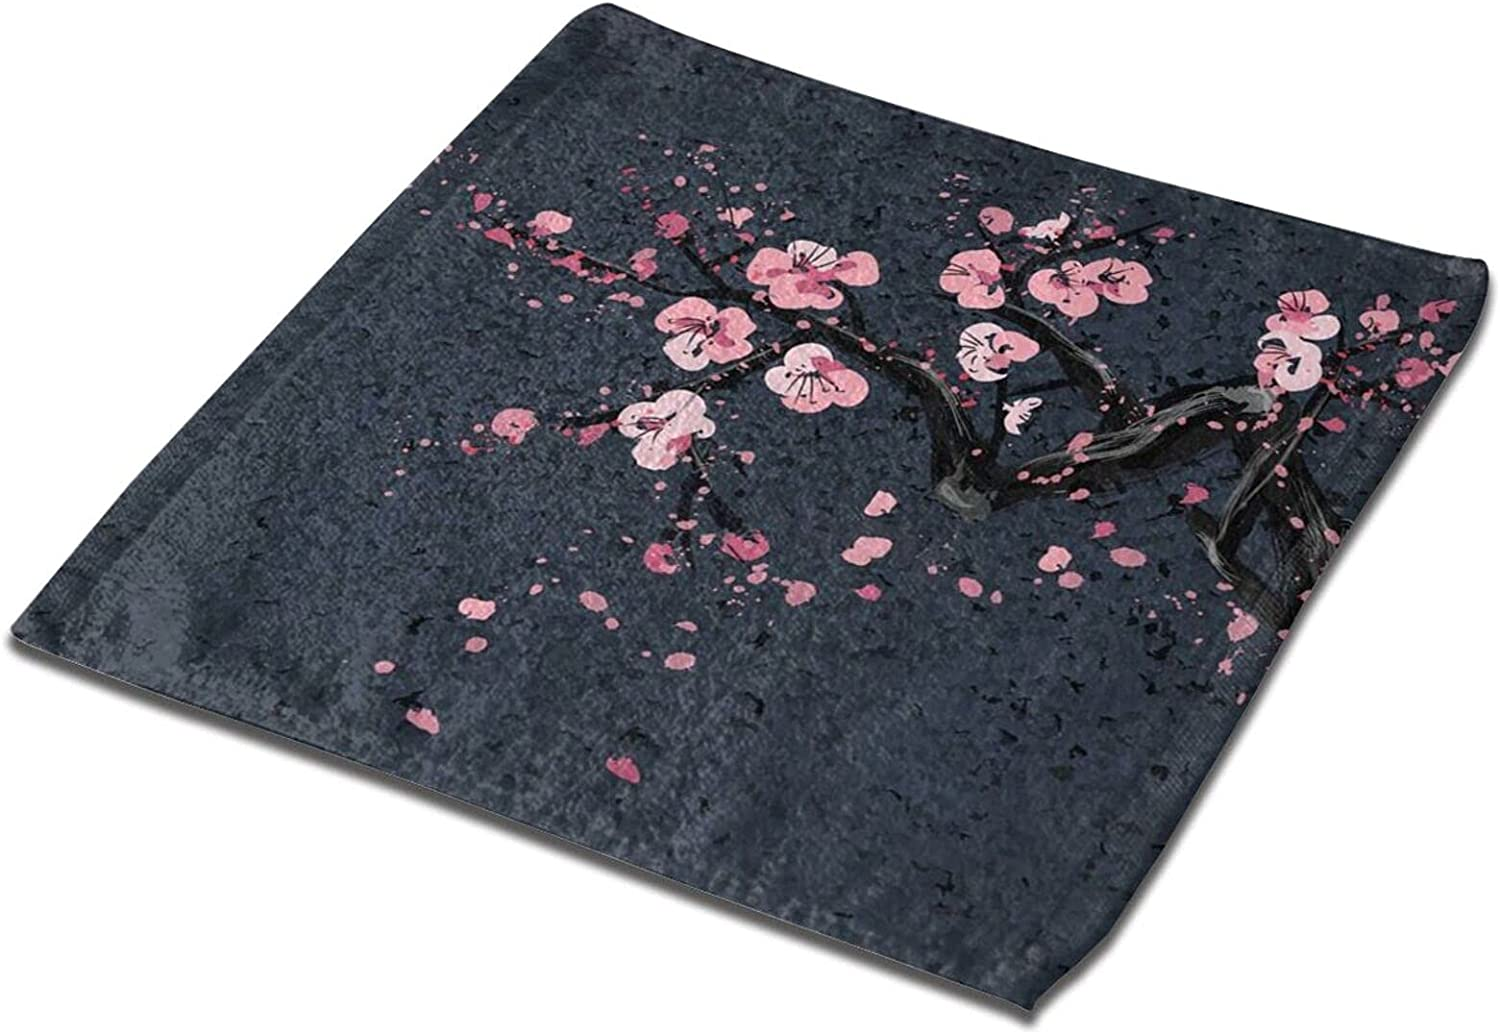 Cherry Blossom Sale special price On Black Printed Hand Albuquerque Mall Super Towel Bath Ab Towels